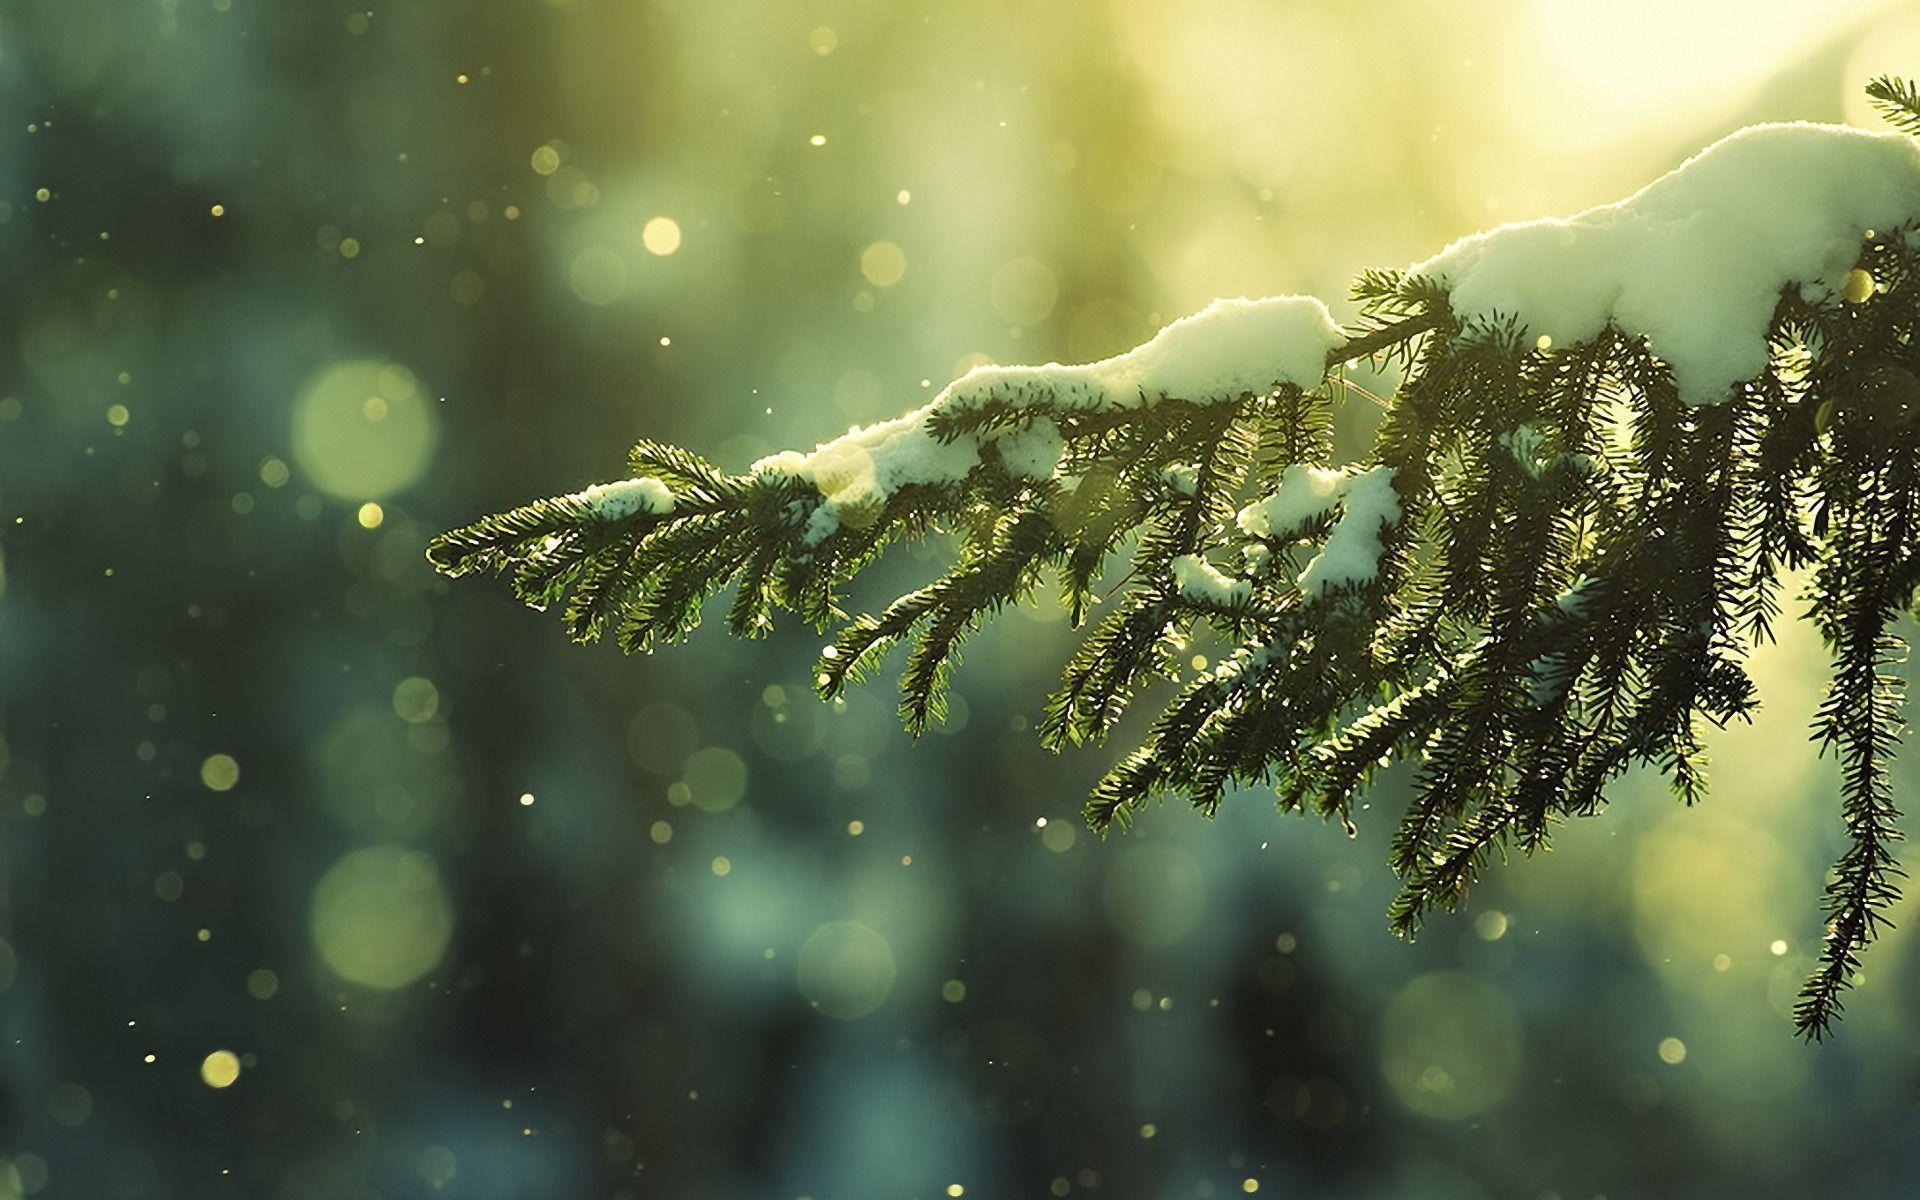 Christmas Snow wallpaper - 496883